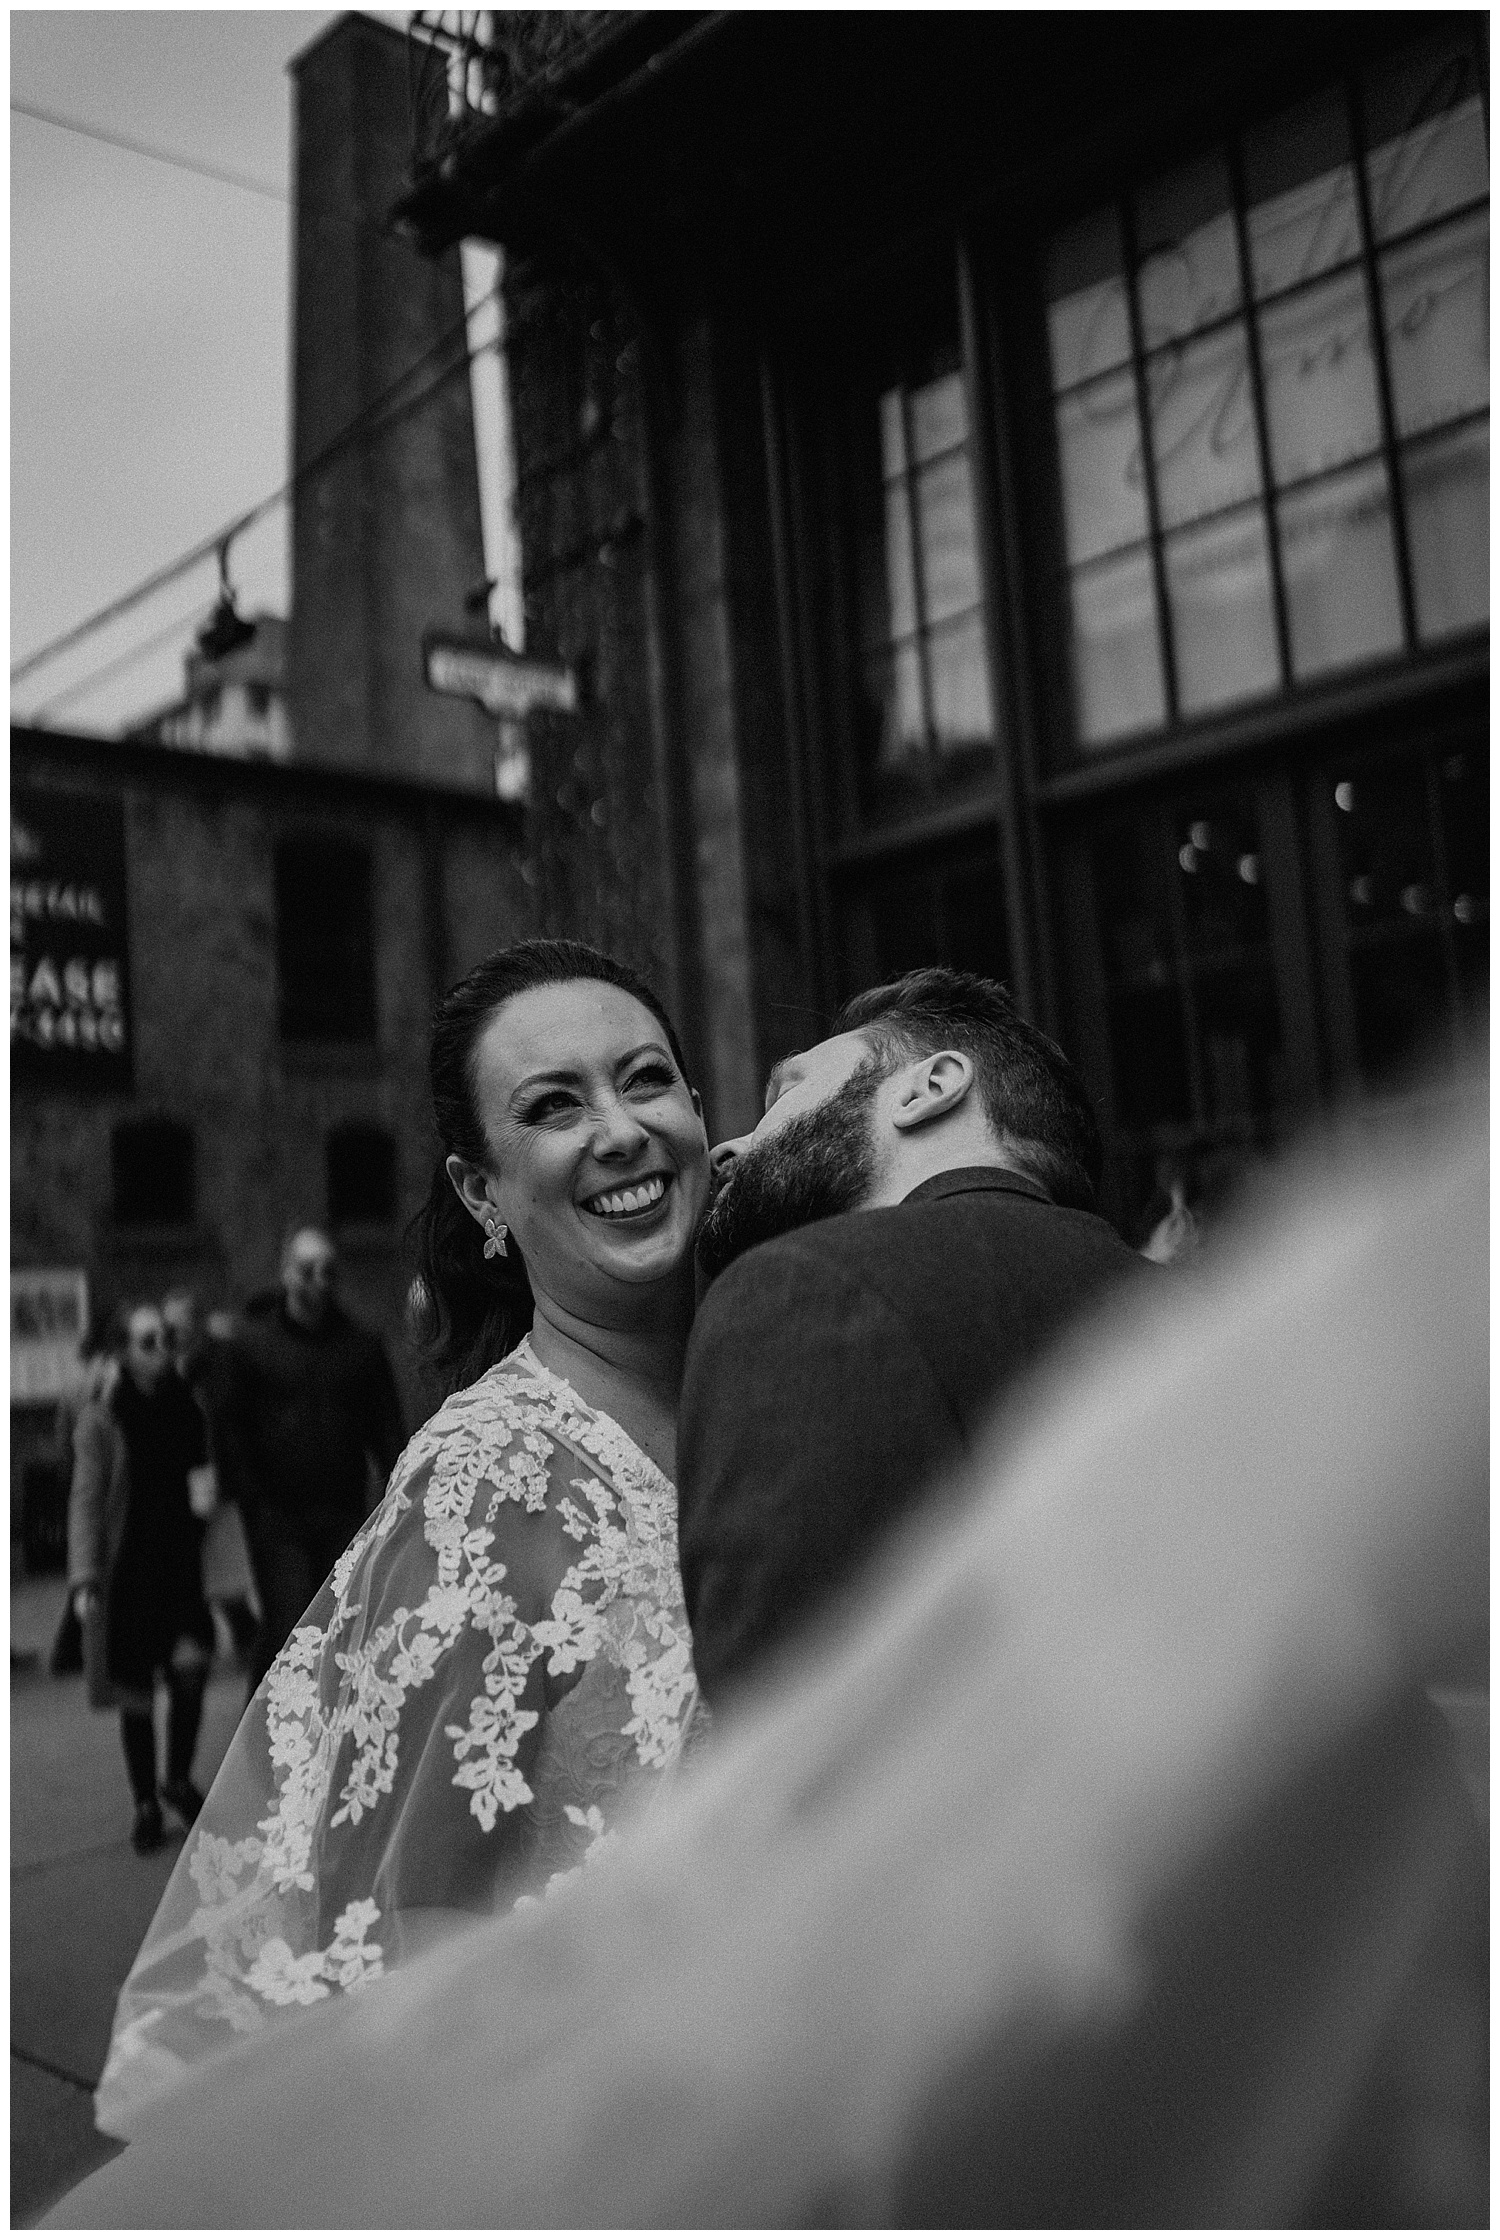 Katie Marie Photography | Archeo Wedding Arta Gallery Wedding | Distillery District Wedding | Toronto Wedding Photographer | Hamilton Toronto Ontario Wedding Photographer |_0074.jpg